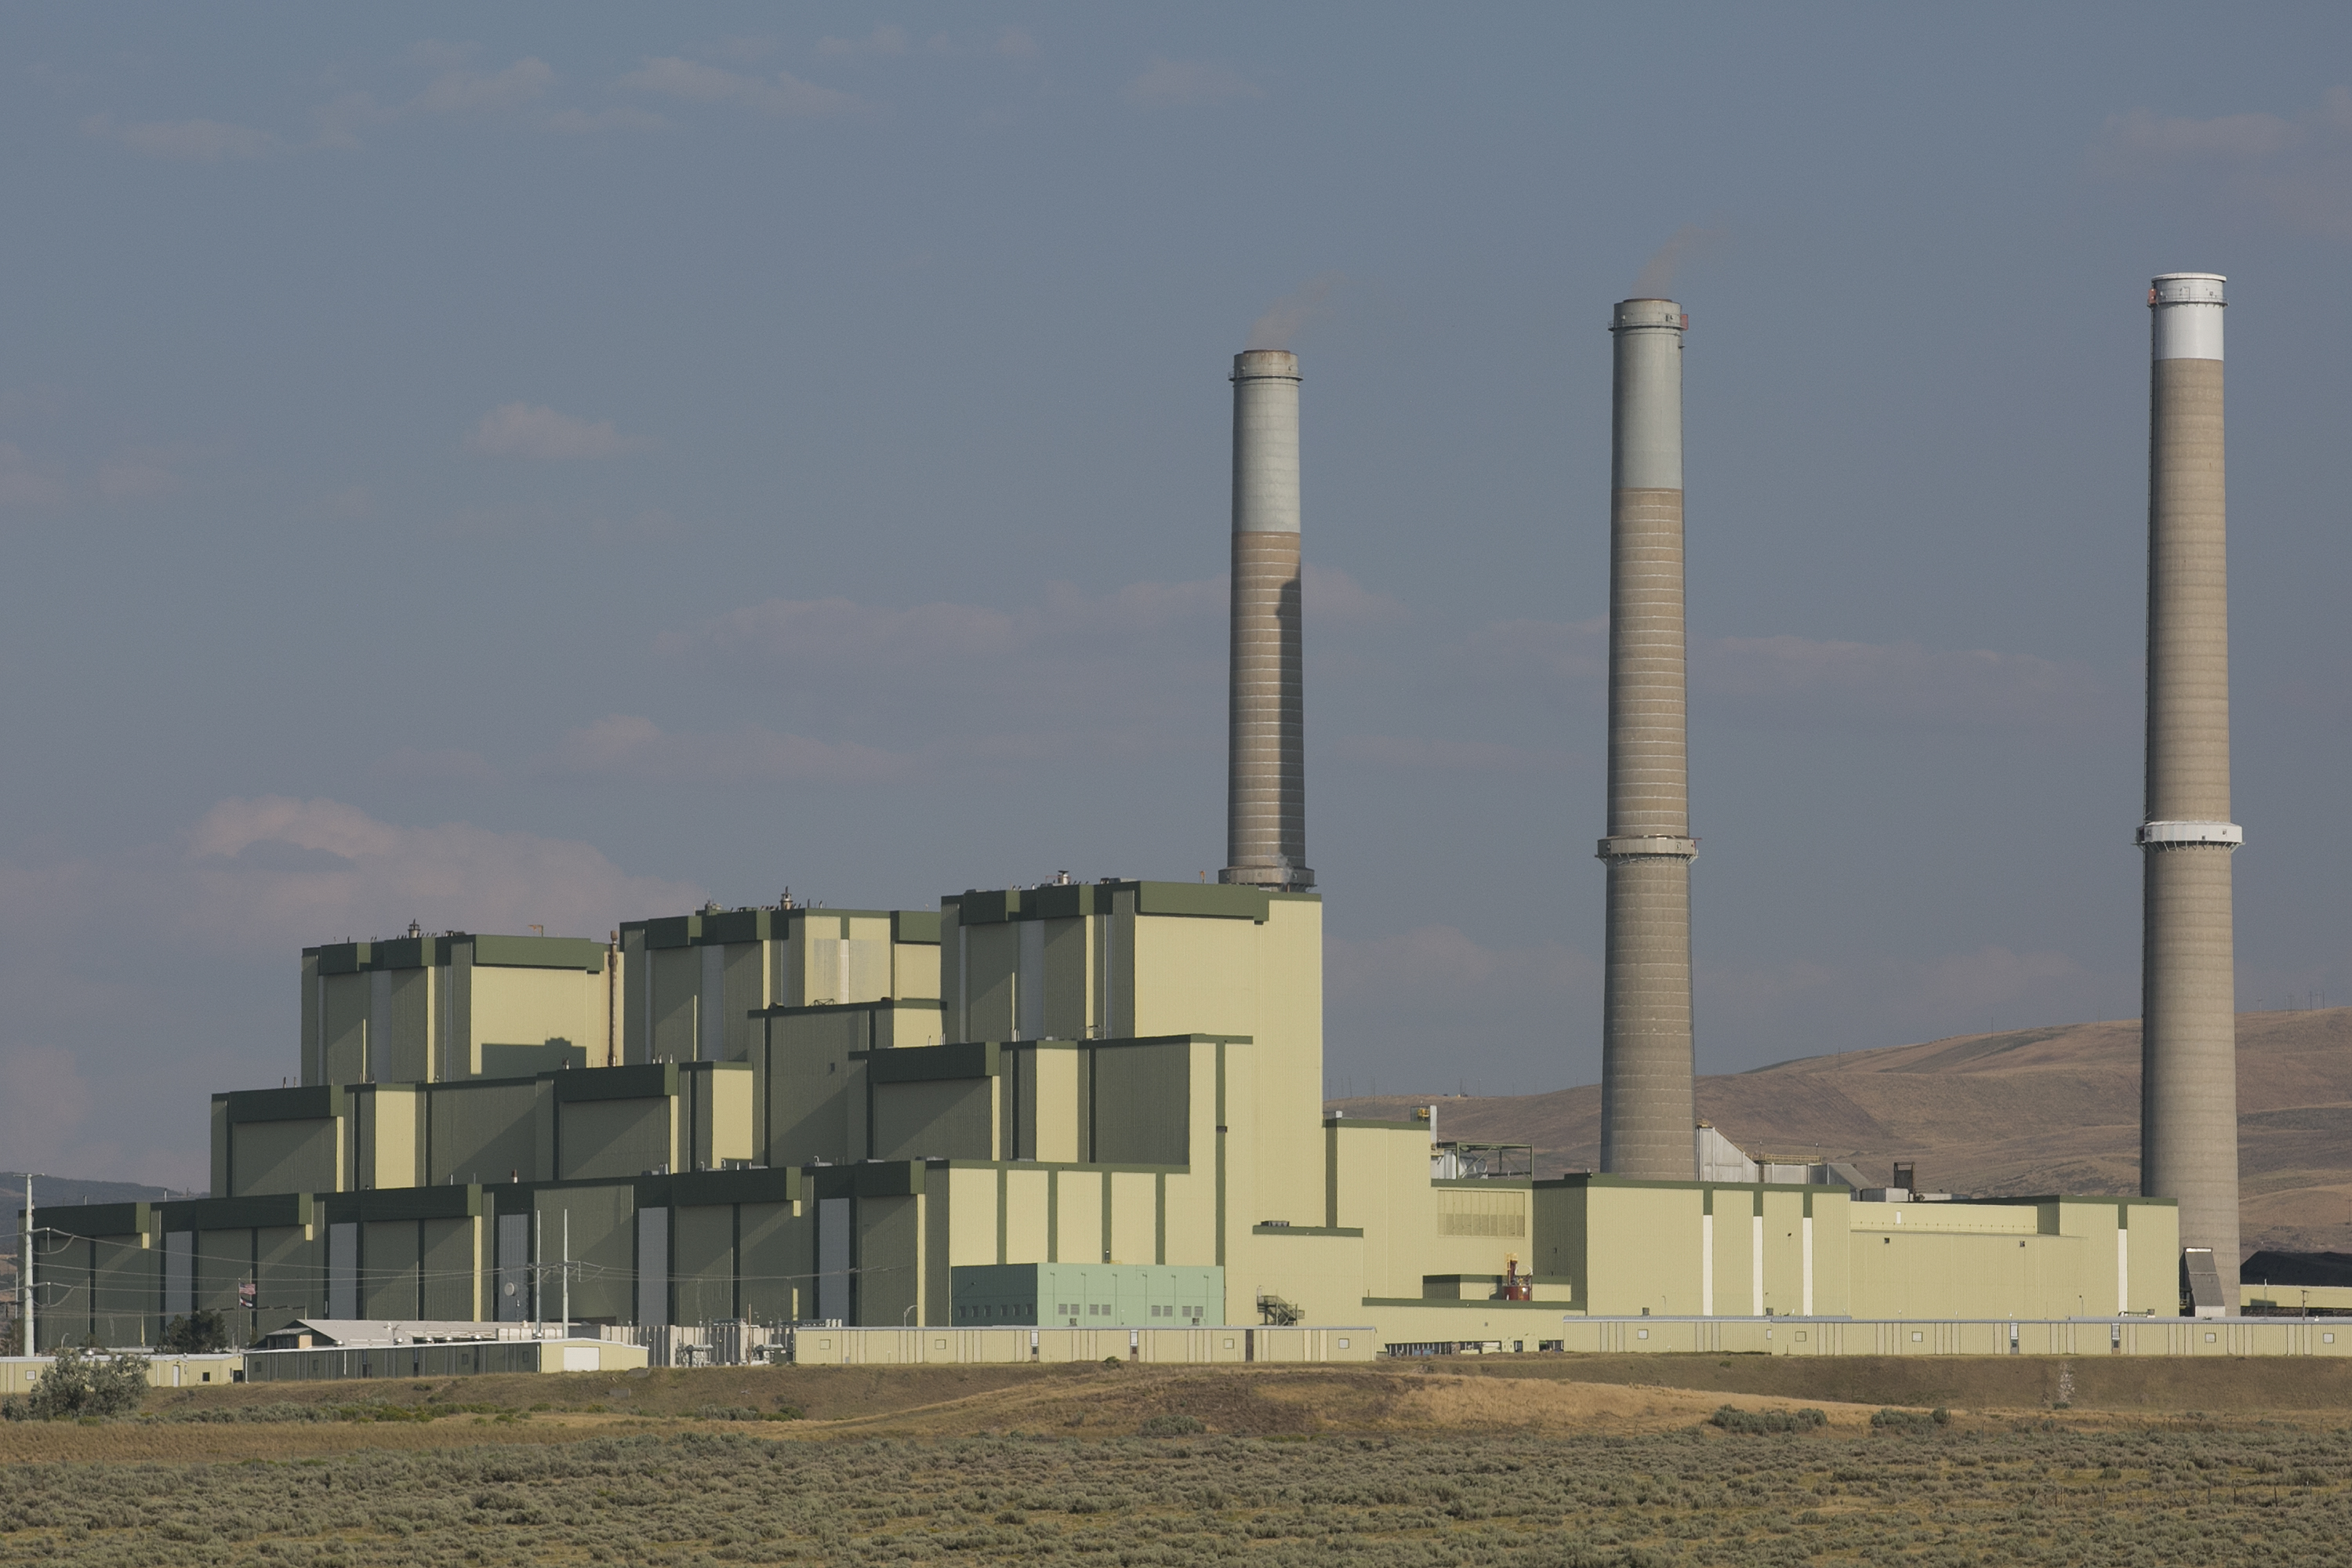 The coal-firedCraig Station power plant is operated byTri-State Generation and Transmission Association.